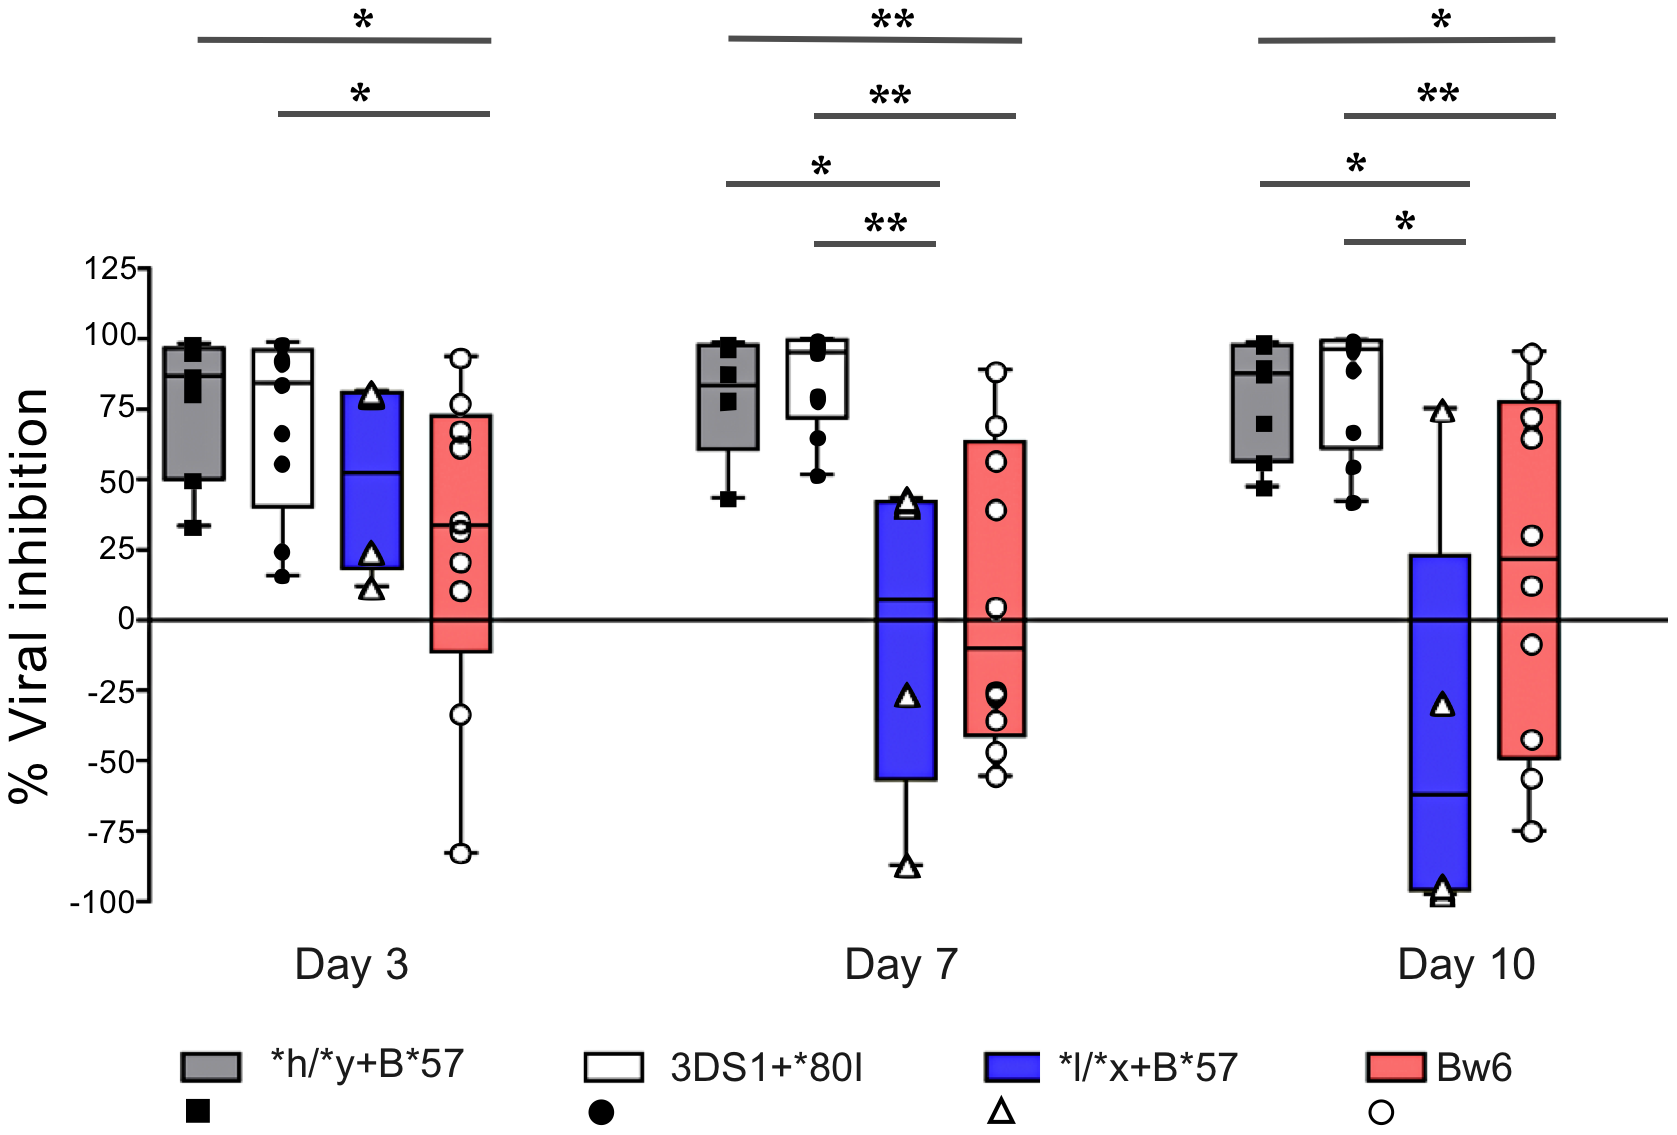 NK cells from subjects carrying <i>*h/*y+B*57</i> and <i>3DS1+*80I</i> suppress viral replication better than those from <i>Bw6hmz</i> and <i>*l/*x+B*57</i> carriers.